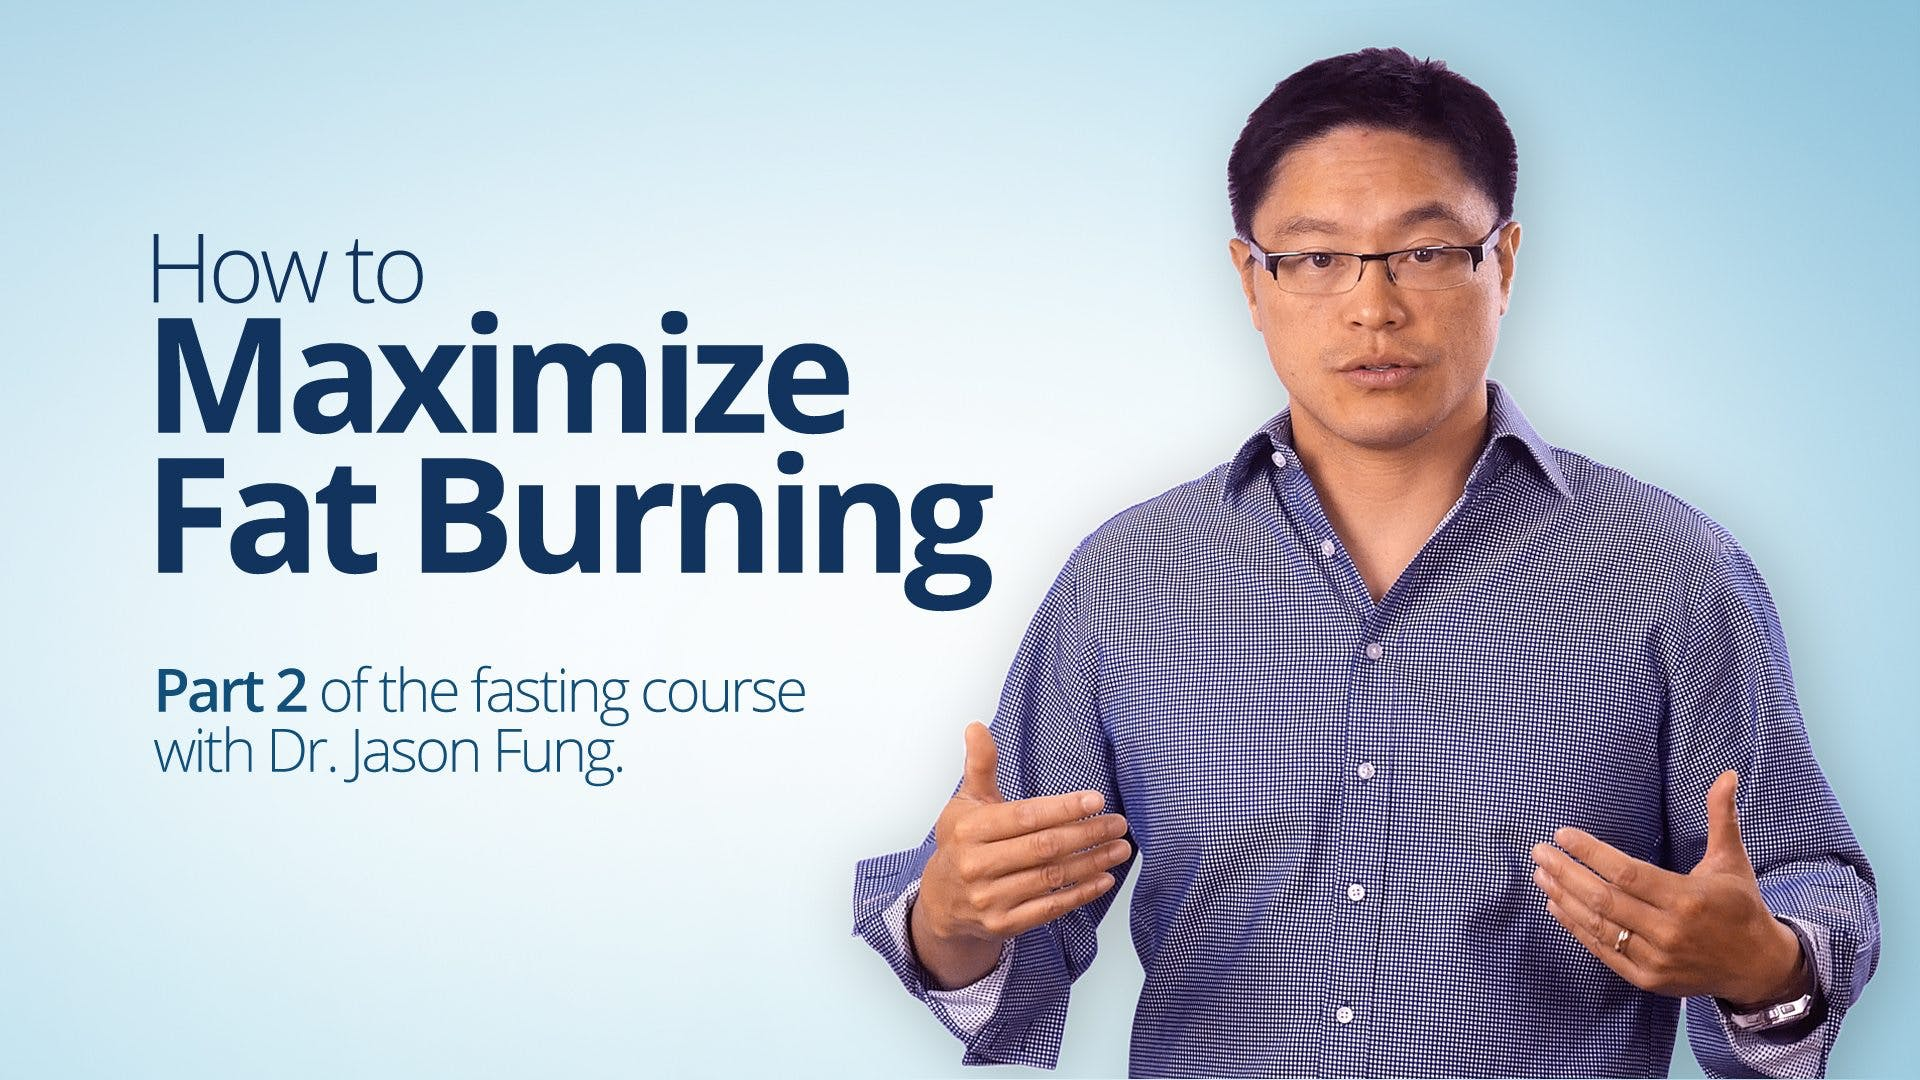 How to Maximize Fat Burning – Dr. Jason Fung